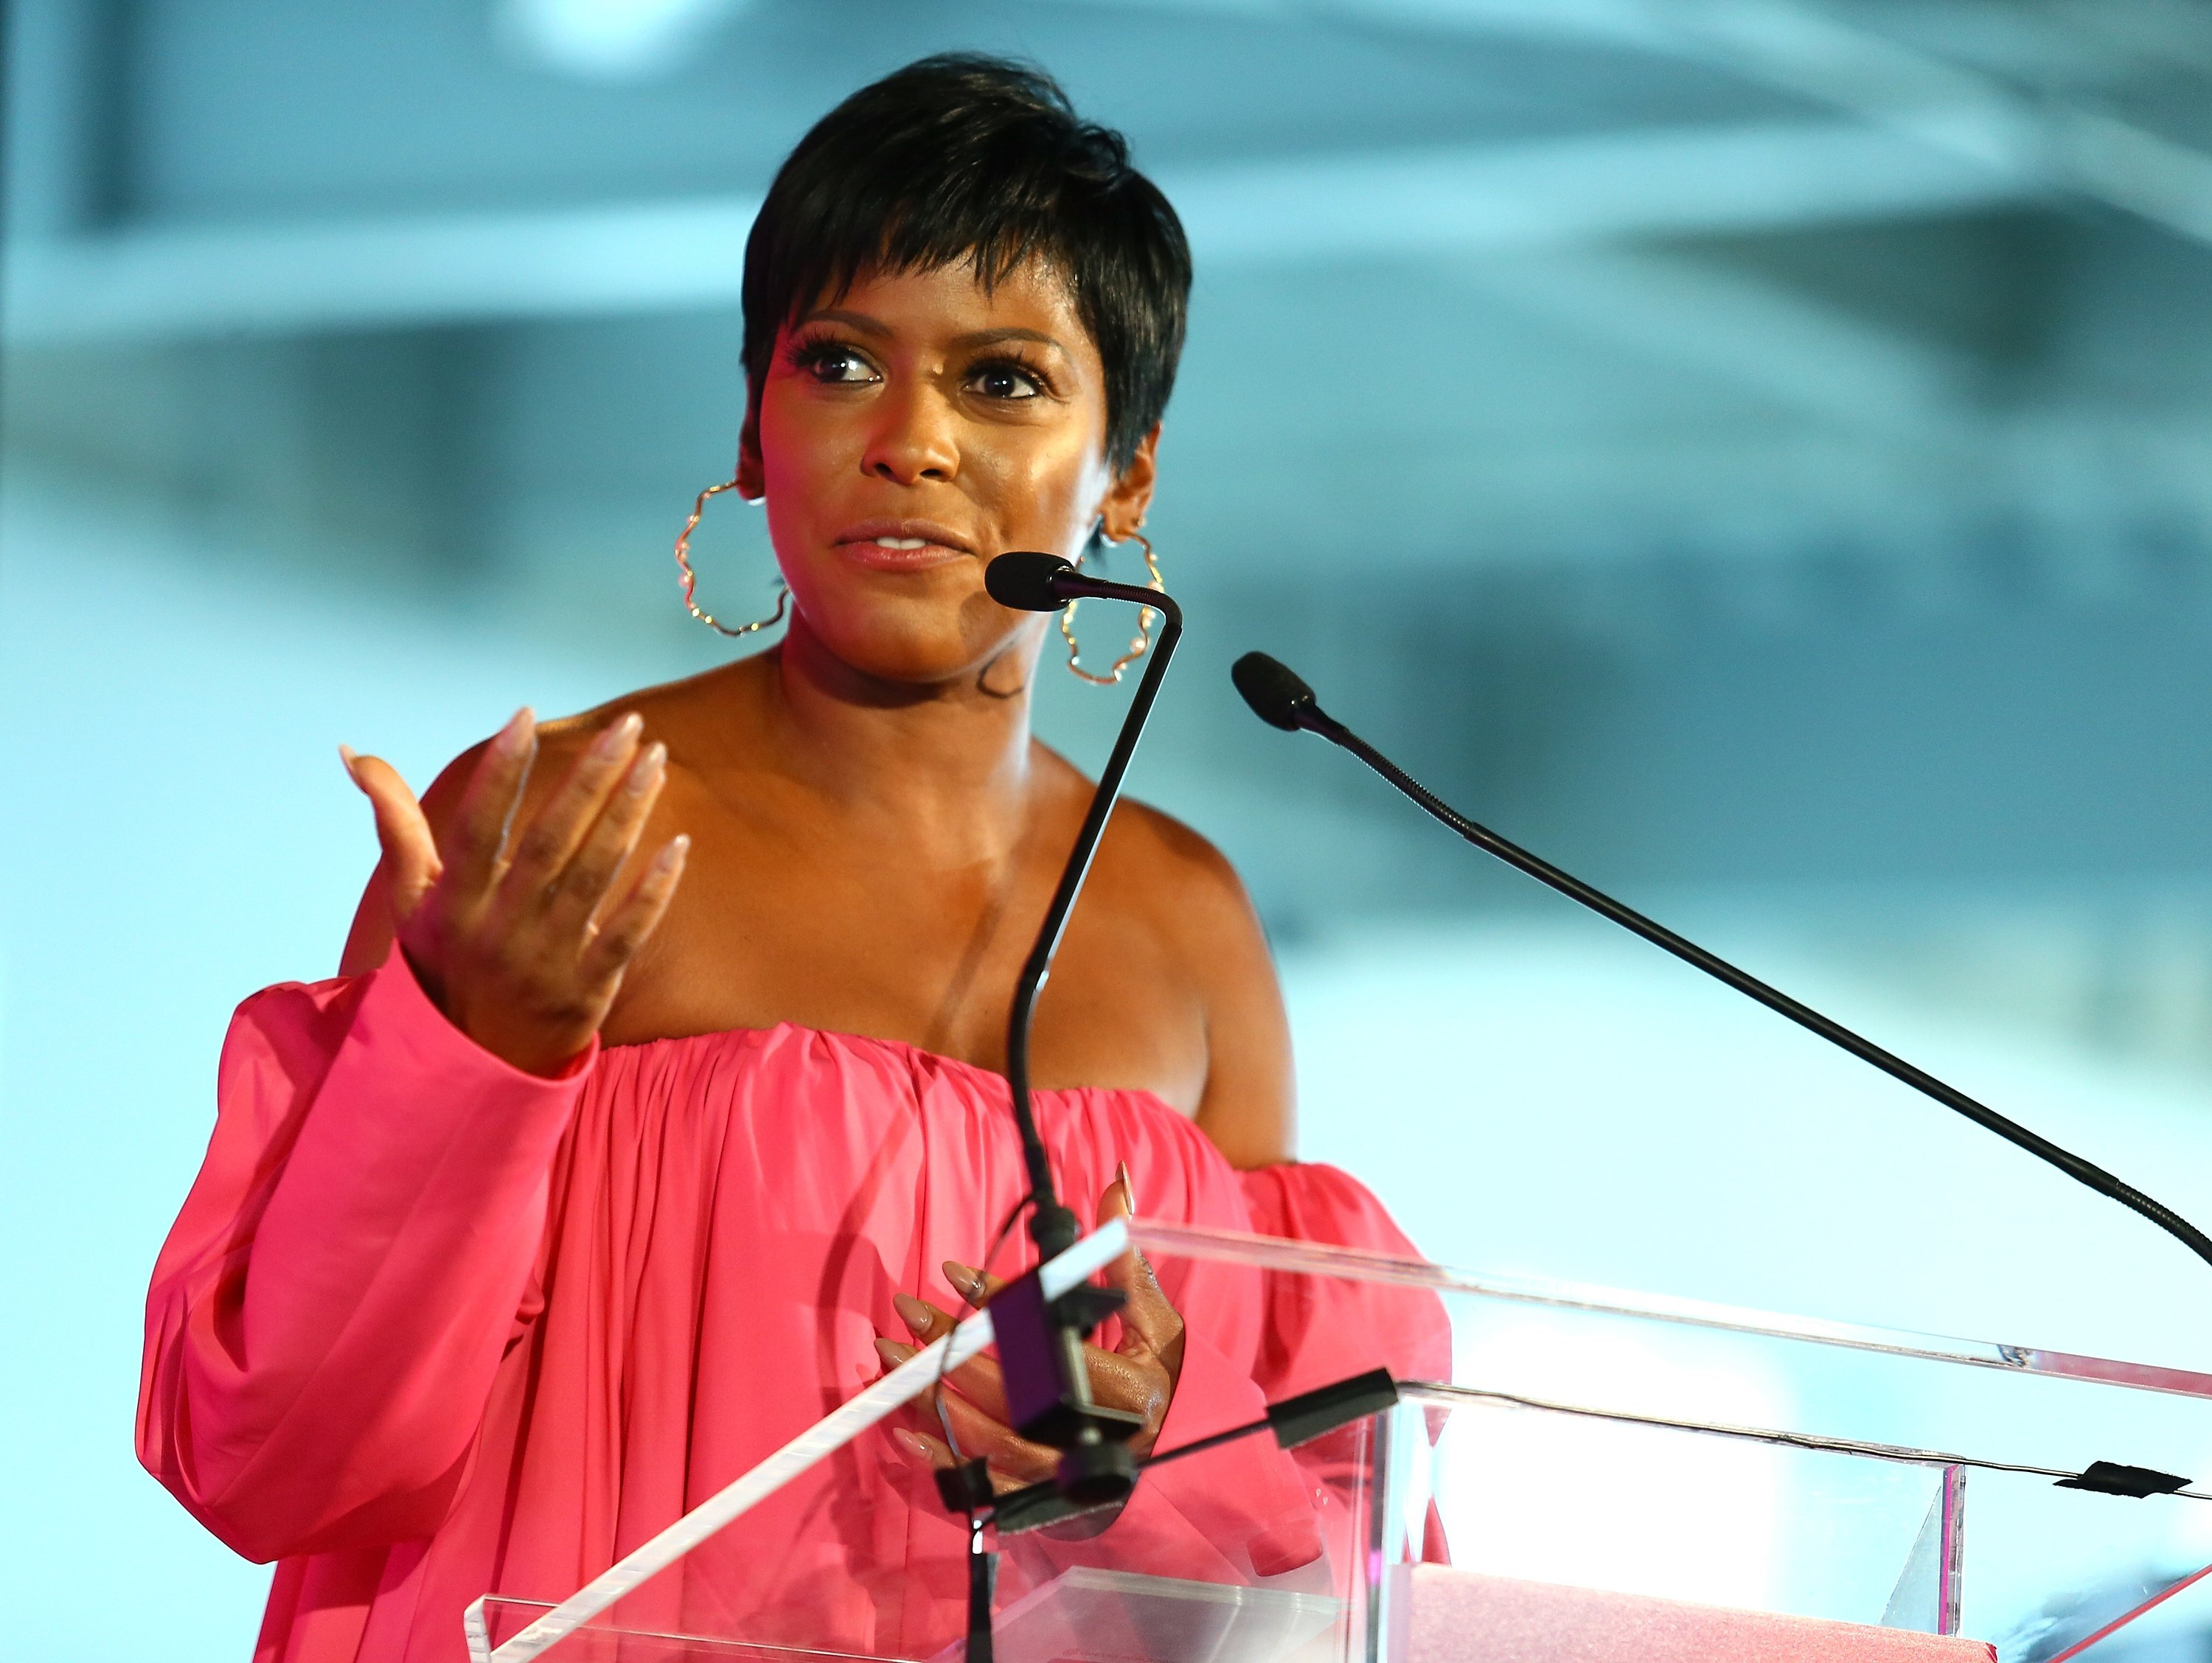 Tamron Hall at a speaking engagement in August 2018. | Photo: Getty Images